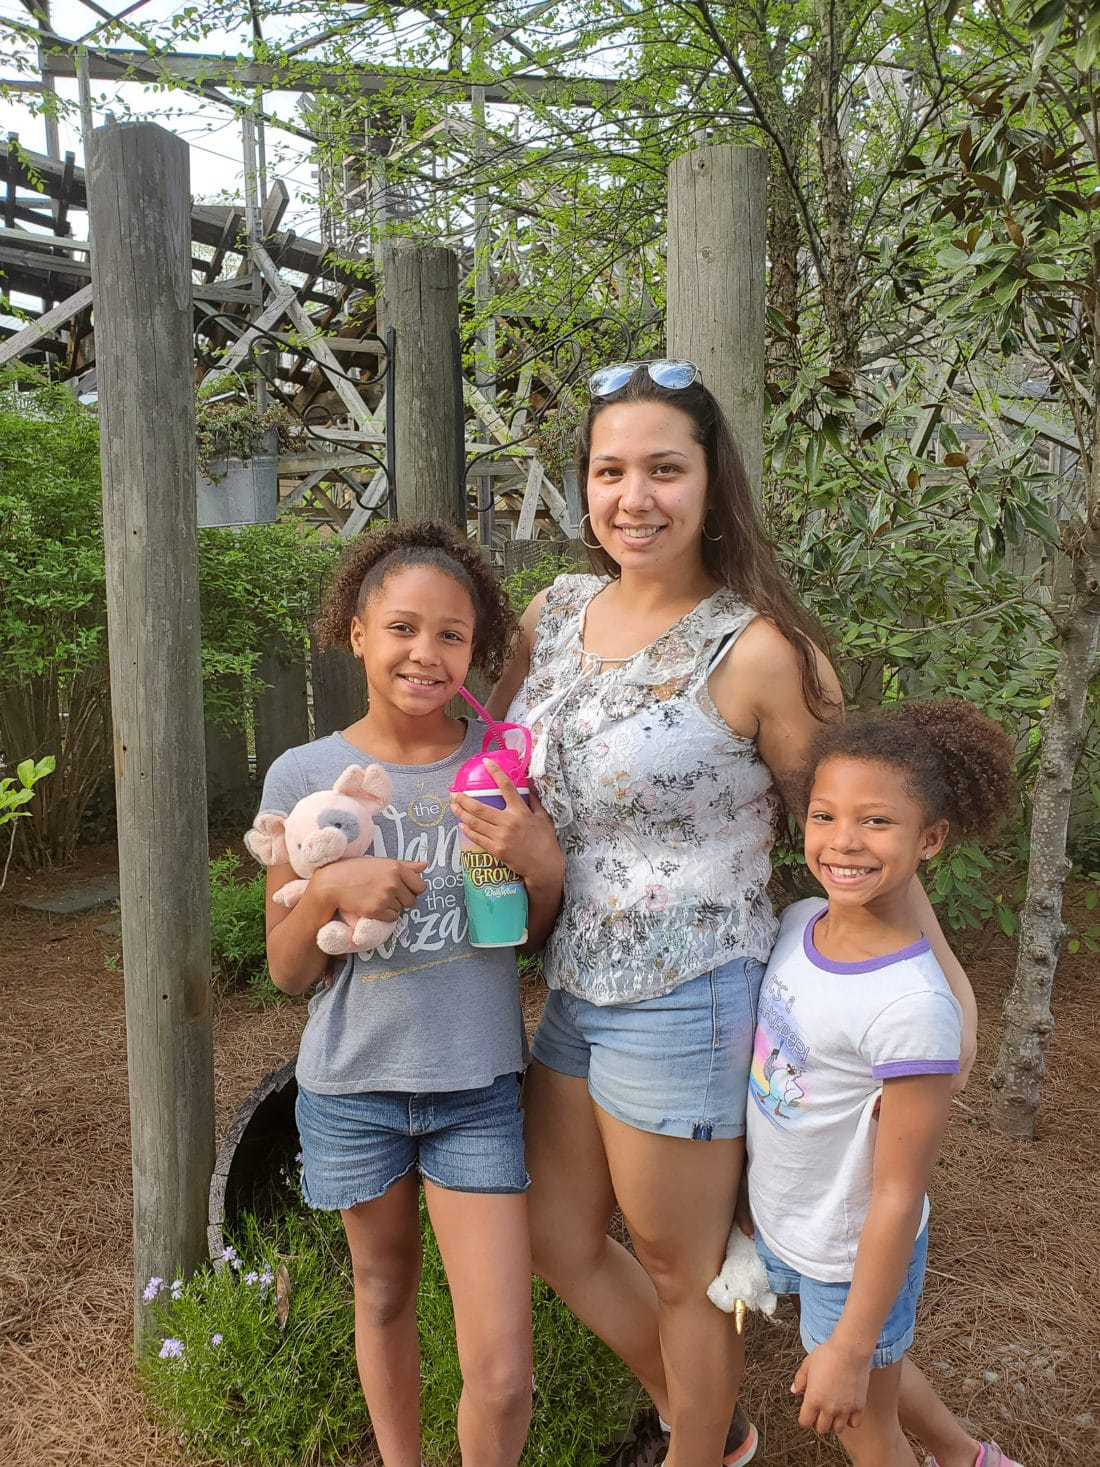 Dollywood Jay Family. My family spent the day playing and eating at the Dollywood theme park, and we are happy to report we had a blast! Read all about our trip and learn why Dollwood is a must visit destination while you are in Pigeon Forge, TN.